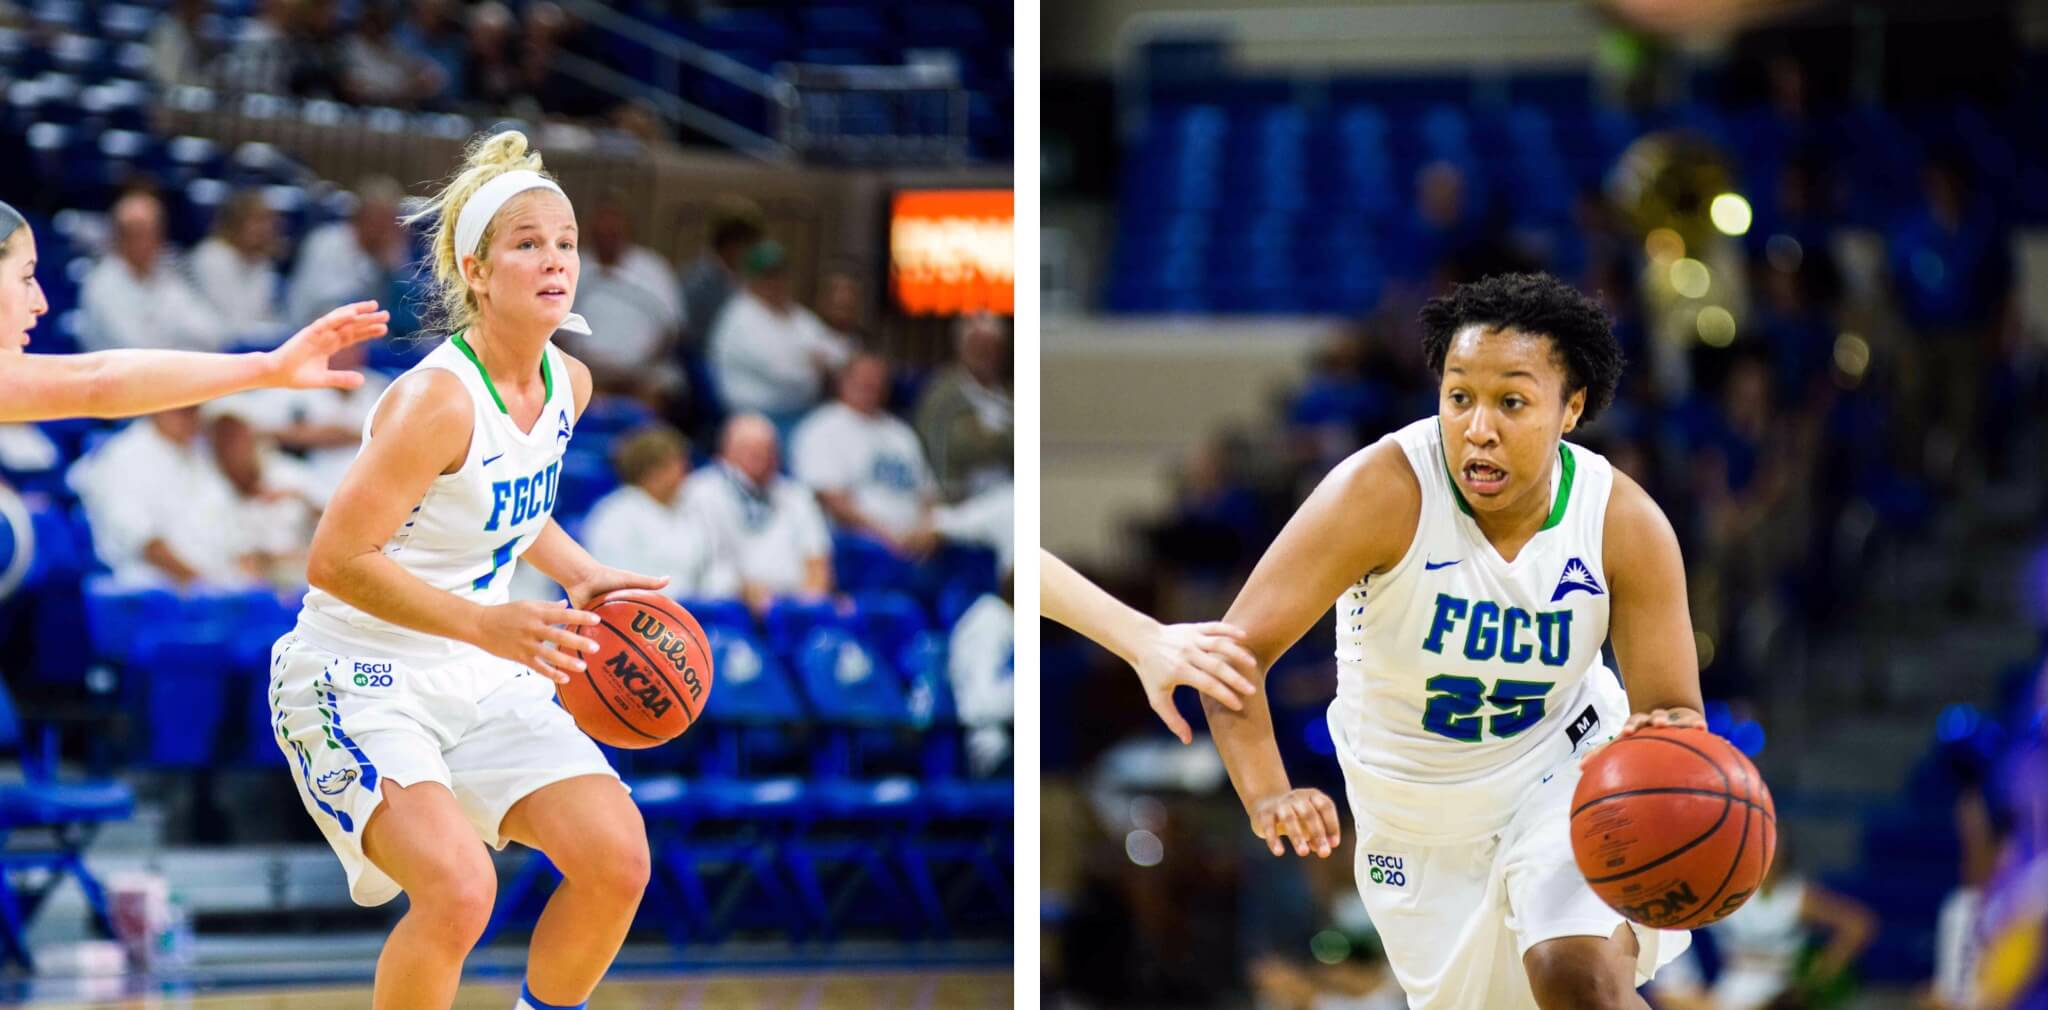 FGCU women's basketball routs USC Upstate to earn program's 400th victory